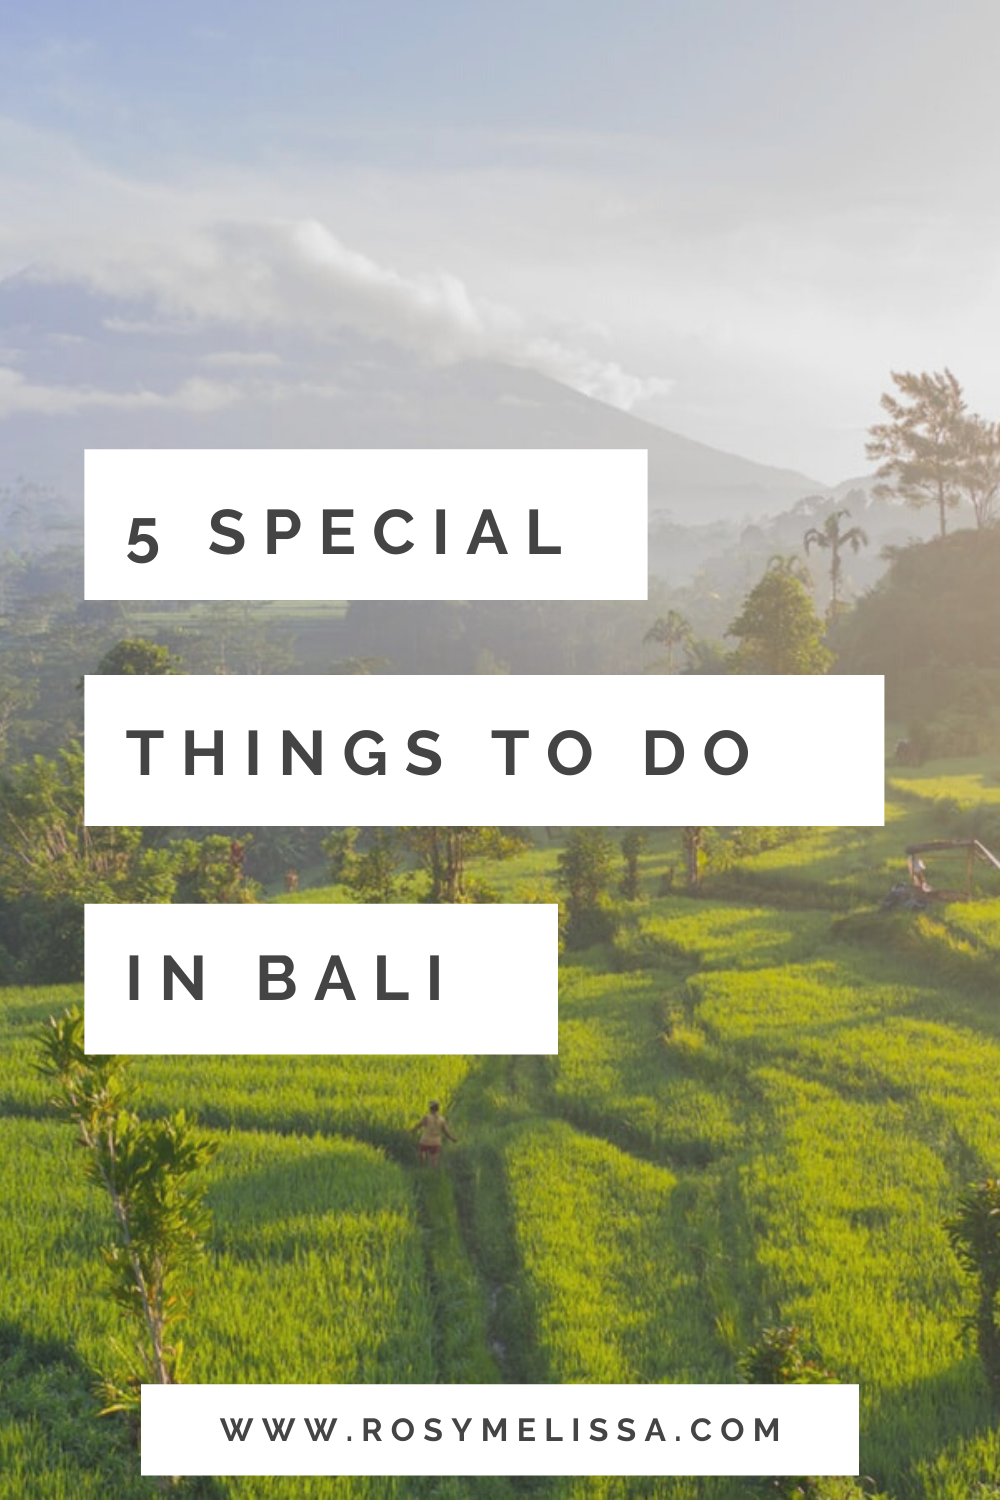 where to stay in bali, where to go in bali, things to do in bali, bali activities, bali tips, island guide